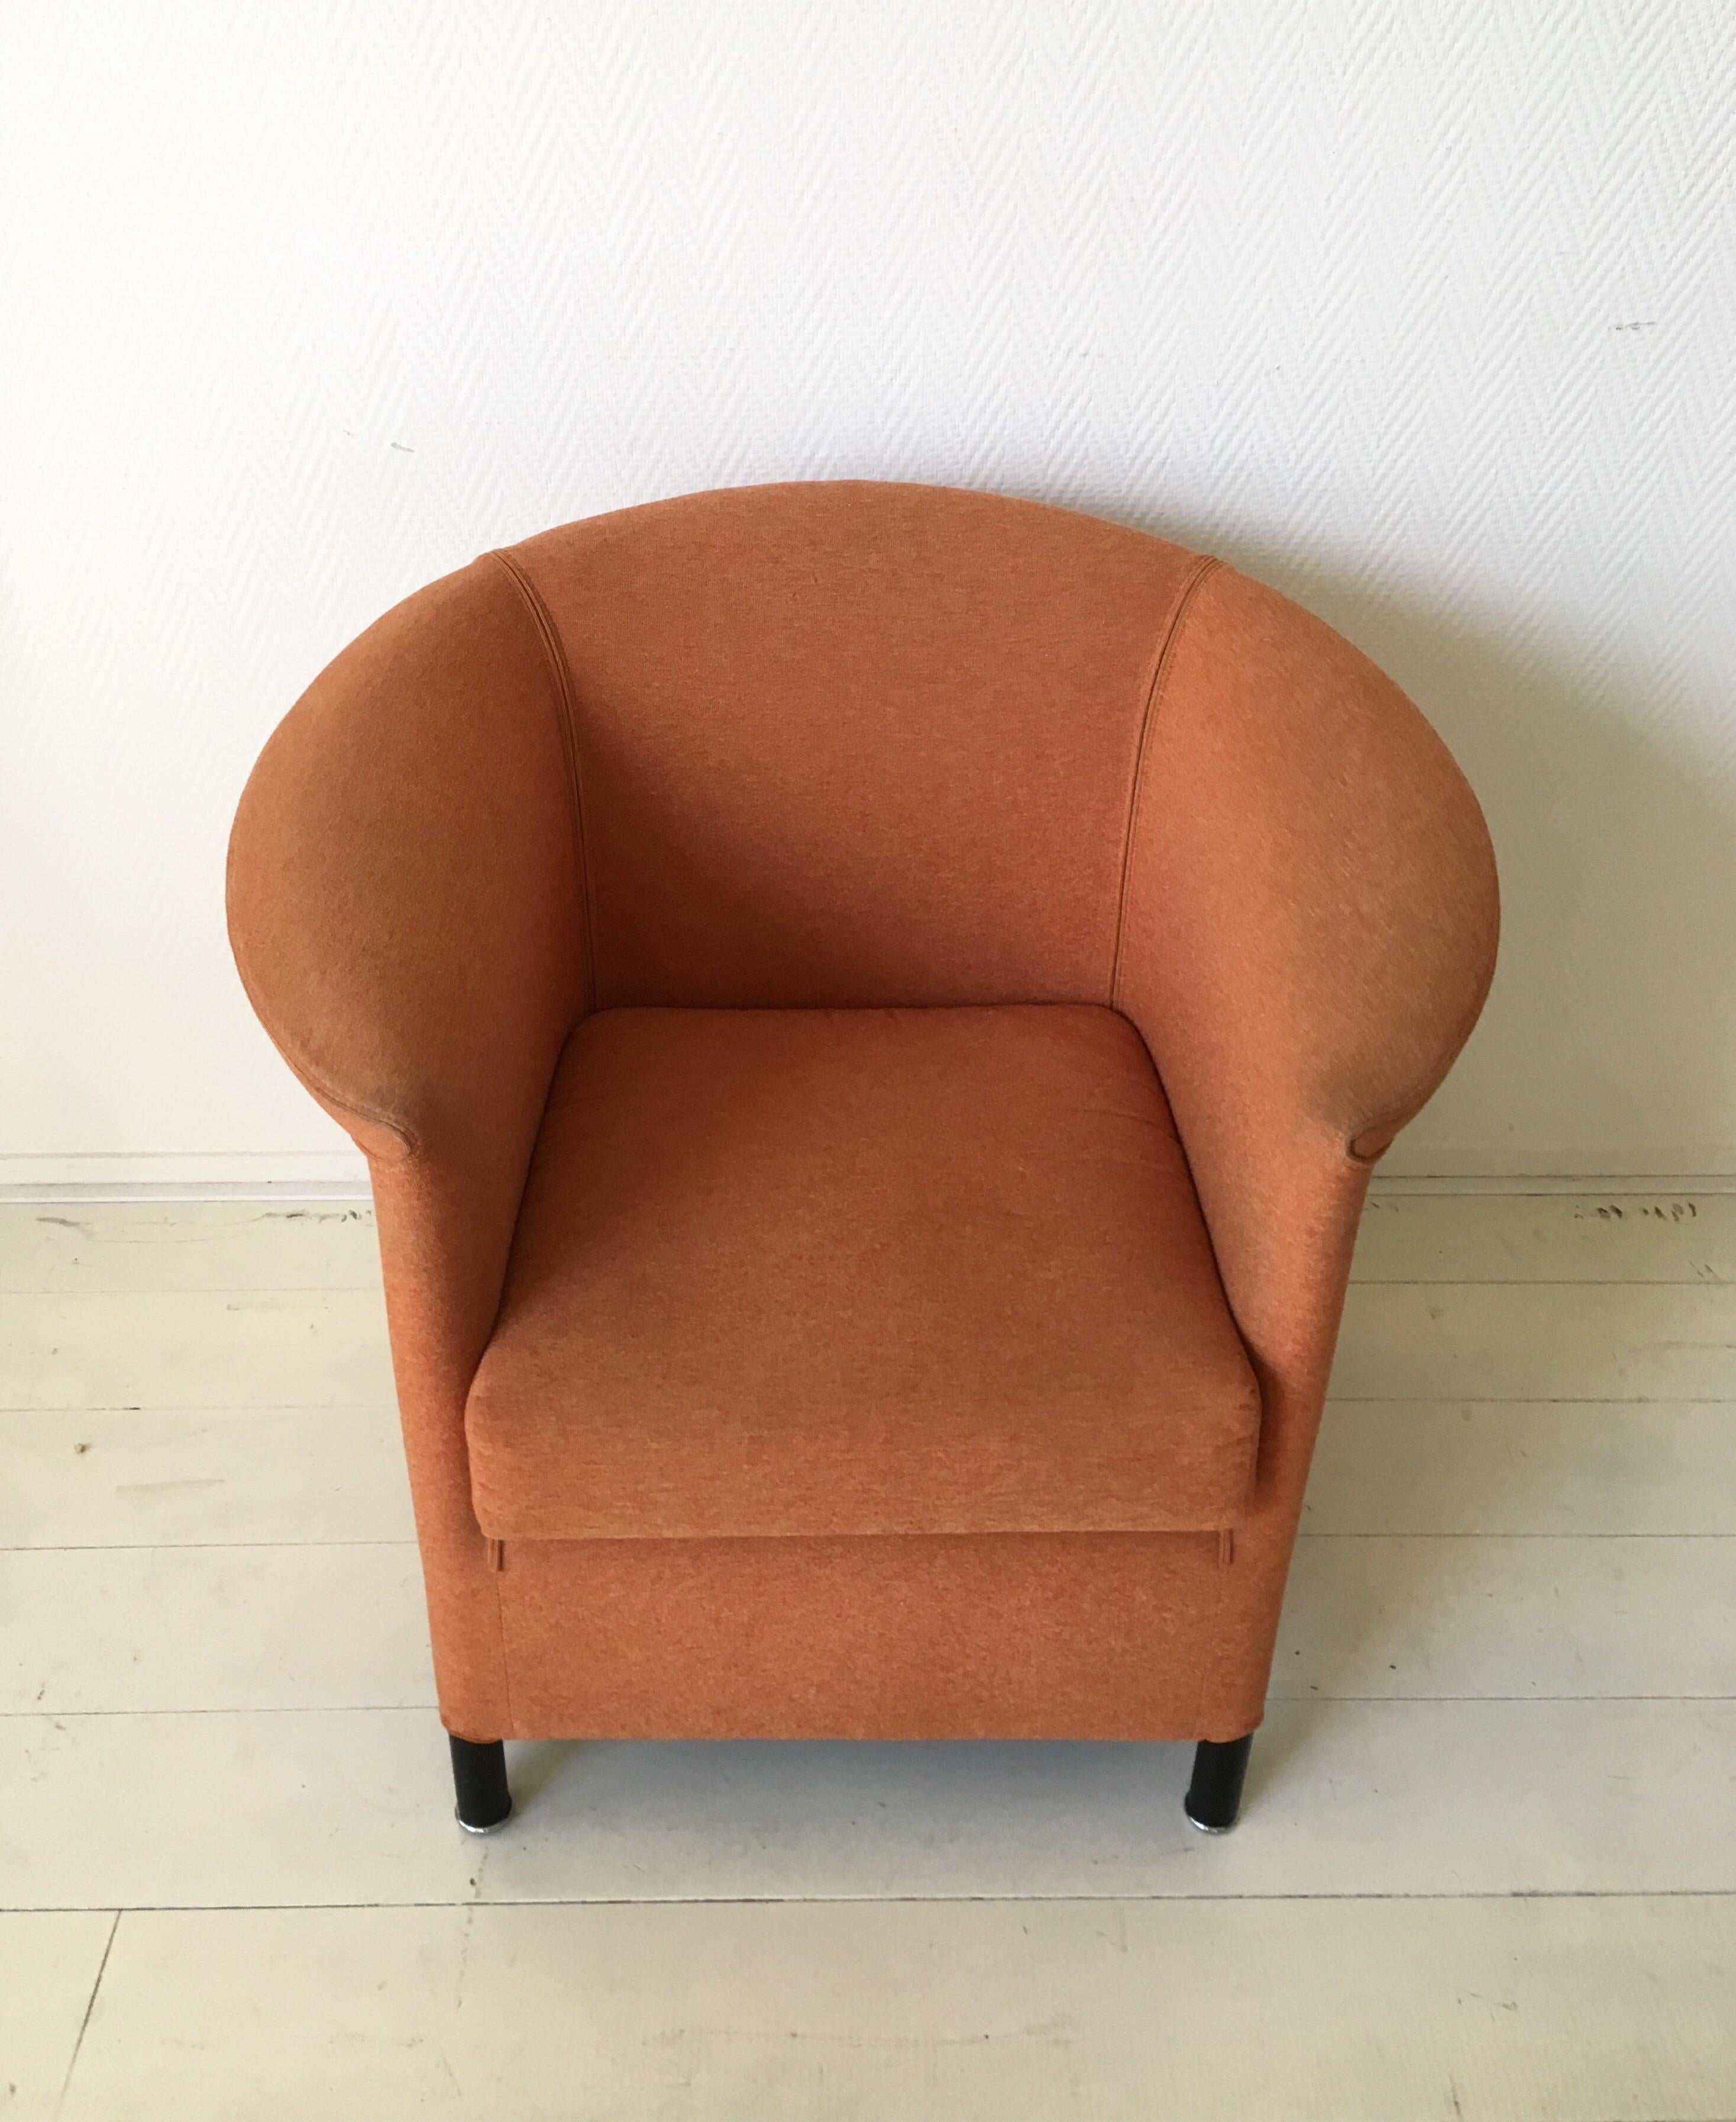 Modern Orange Armchair By Paolo Piva For Wittmann, Model Aura For Sale